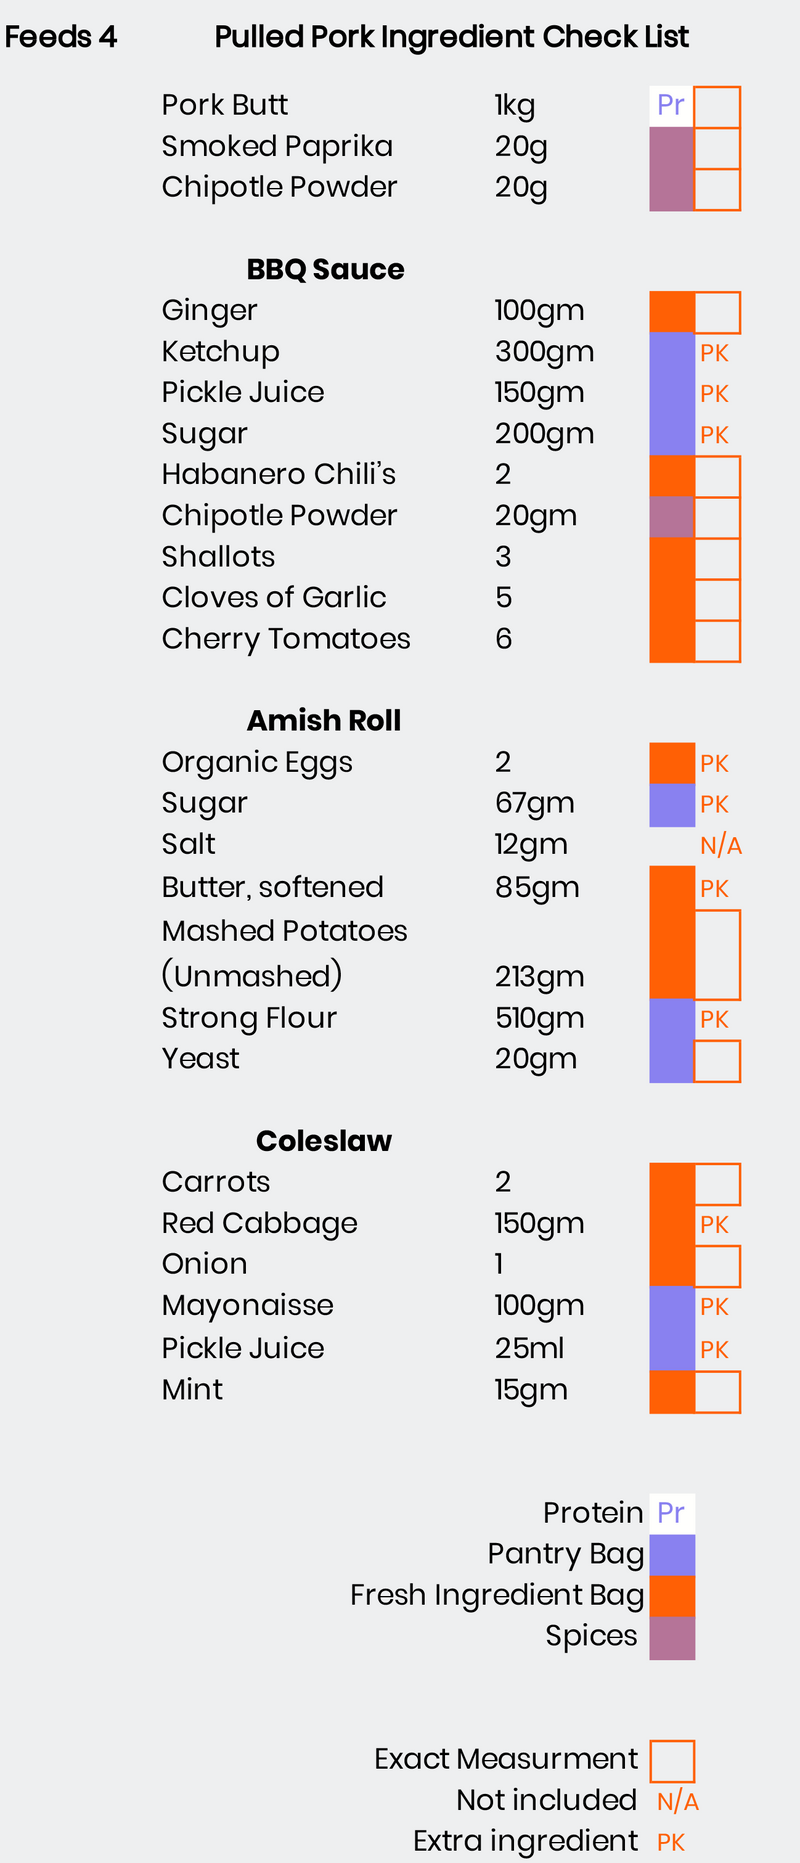 Pulled Pork Amish Roll - Ingredient Pack